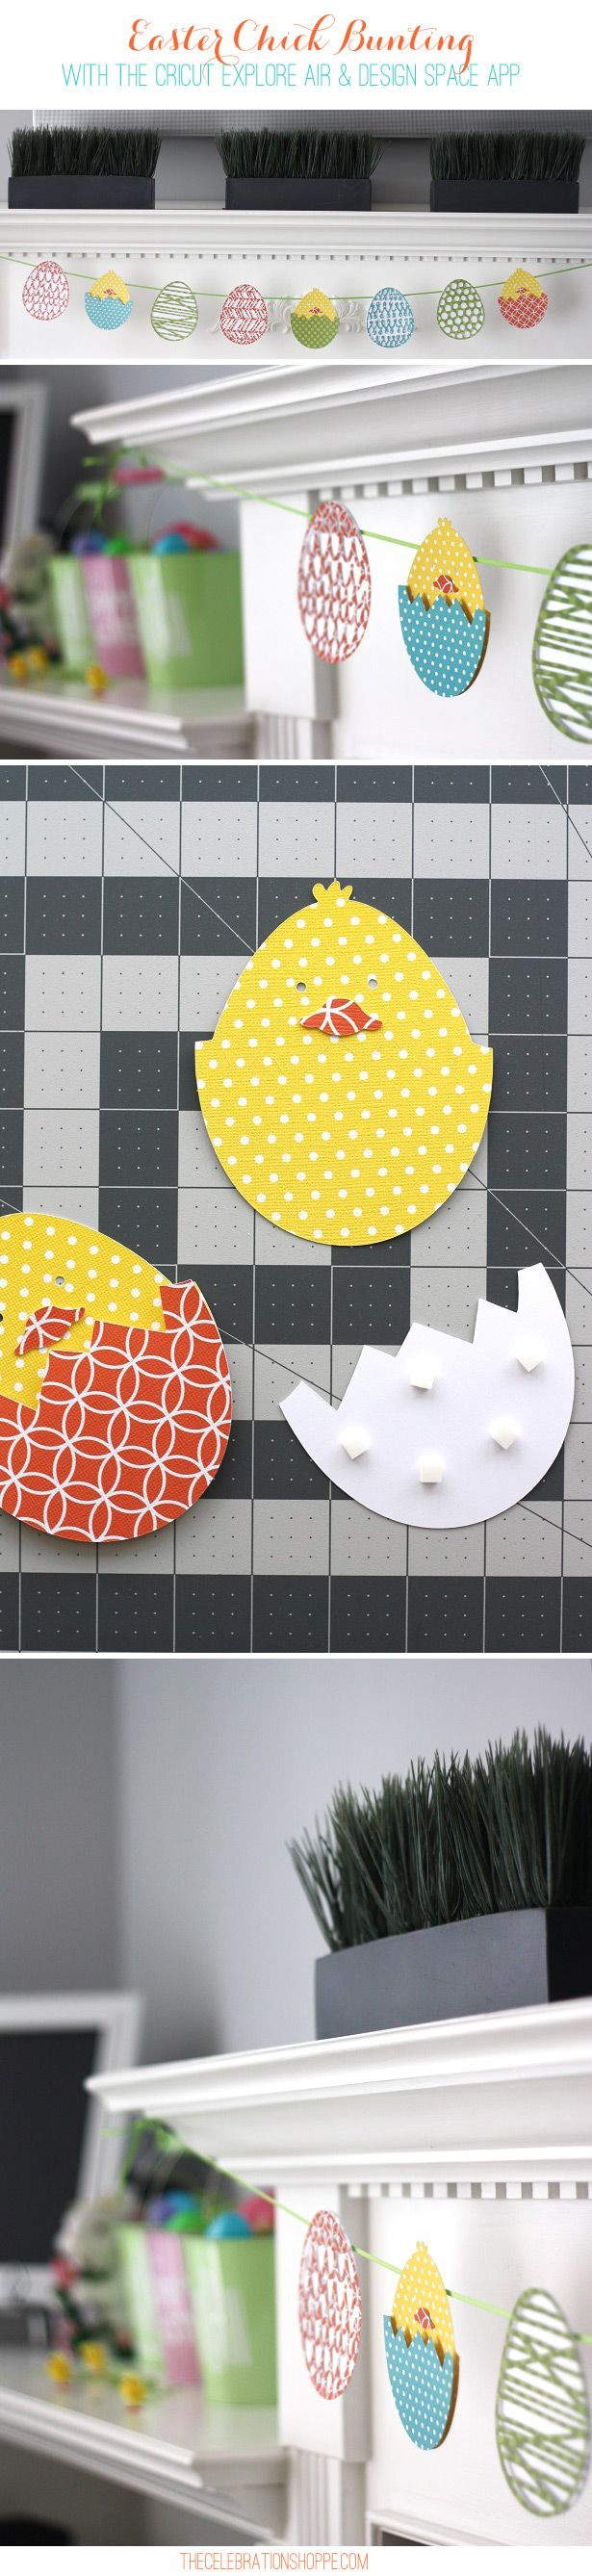 Easter Chick Bunting & Capturing Design Inspiration In The Moment with @Cricut Design Space App